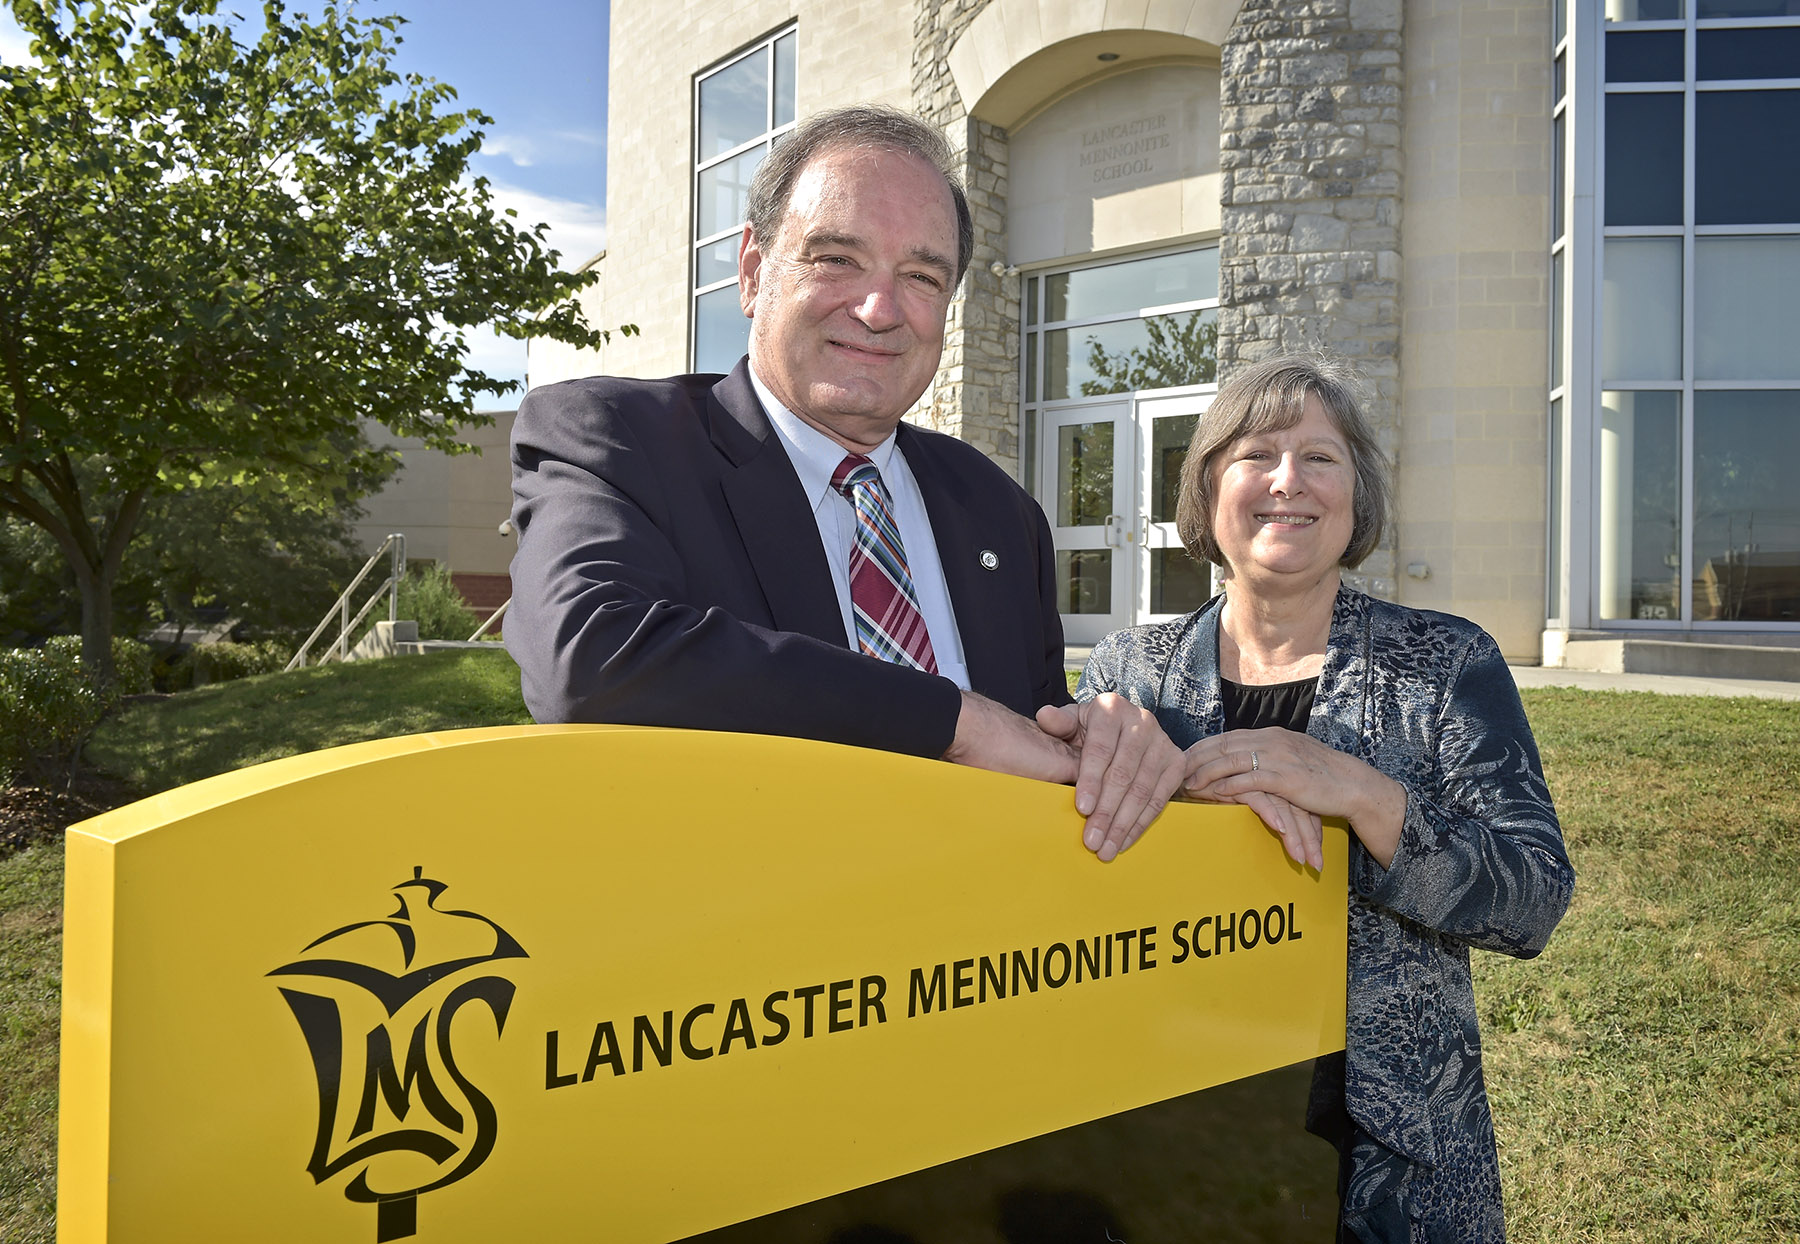 As It Enters Its 75th Year Lancaster Mennonite School Has Undergone Dramatic Changes But Has Remained True To Its Core Mission Faith Values Lancasteronline Com